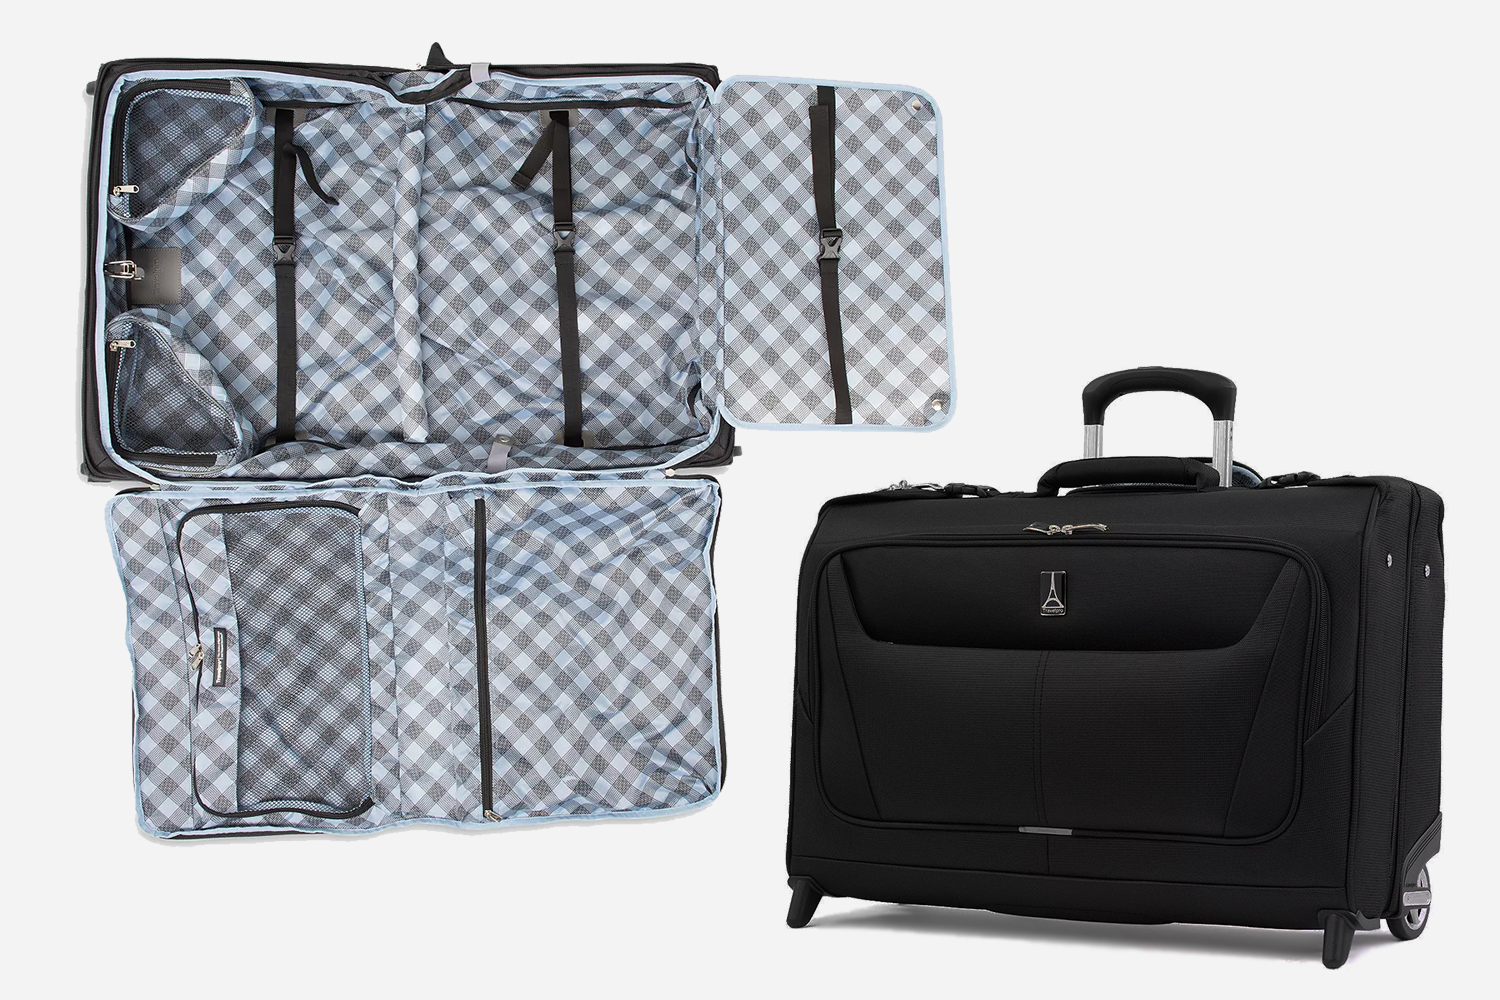 TravelPro Maxlite 5 Carry-On Rolling Garment Bag